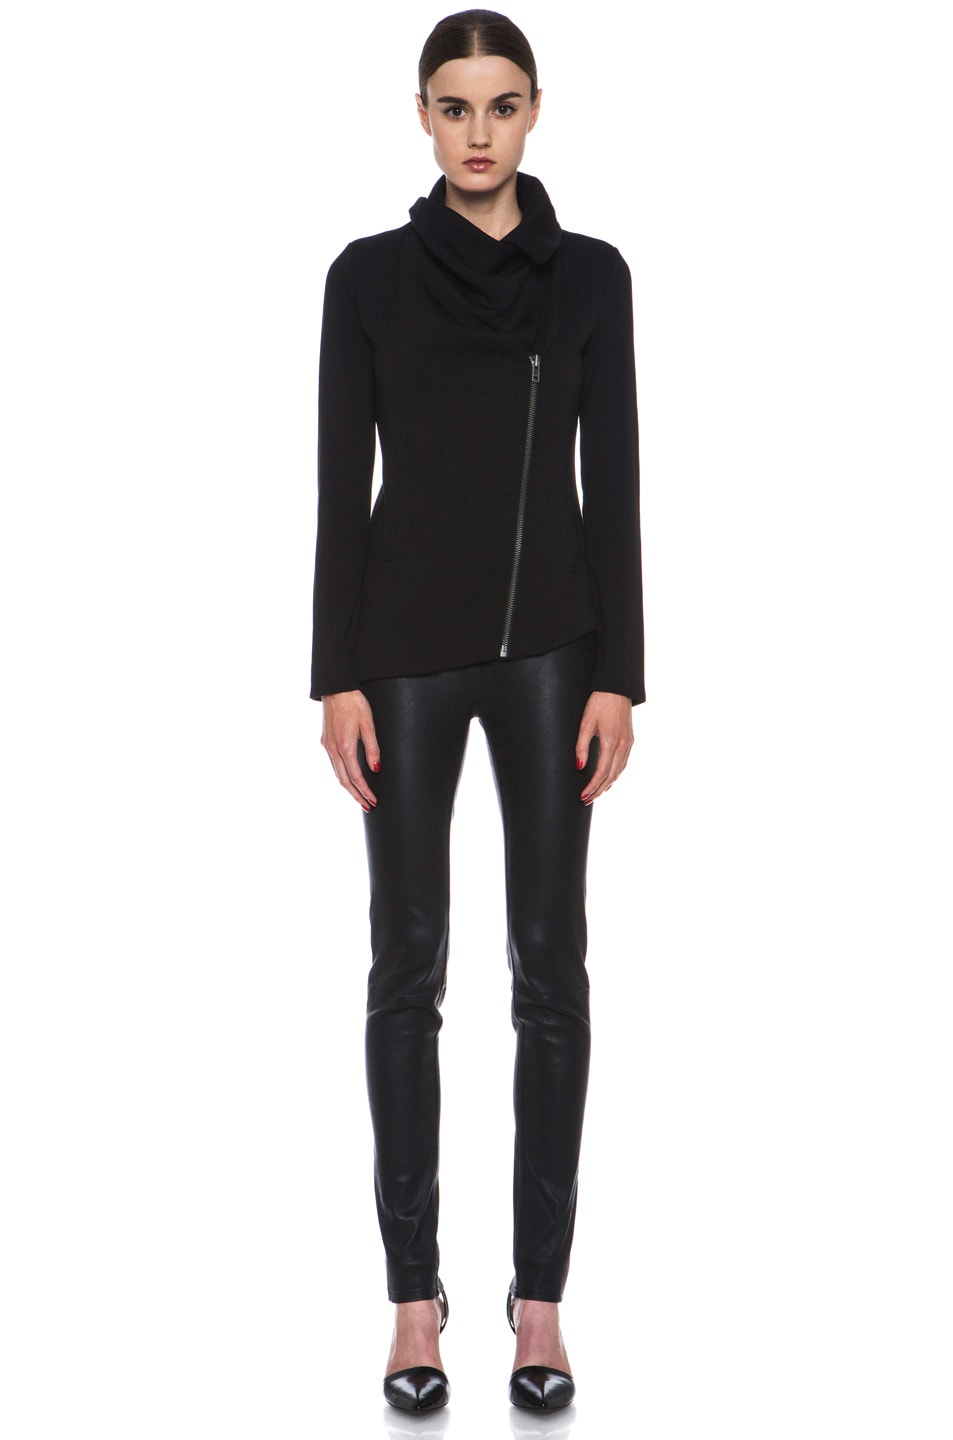 Image 6 of HELMUT Helmut Lang Villus Zip Up Sweatshirt Jacket in Black